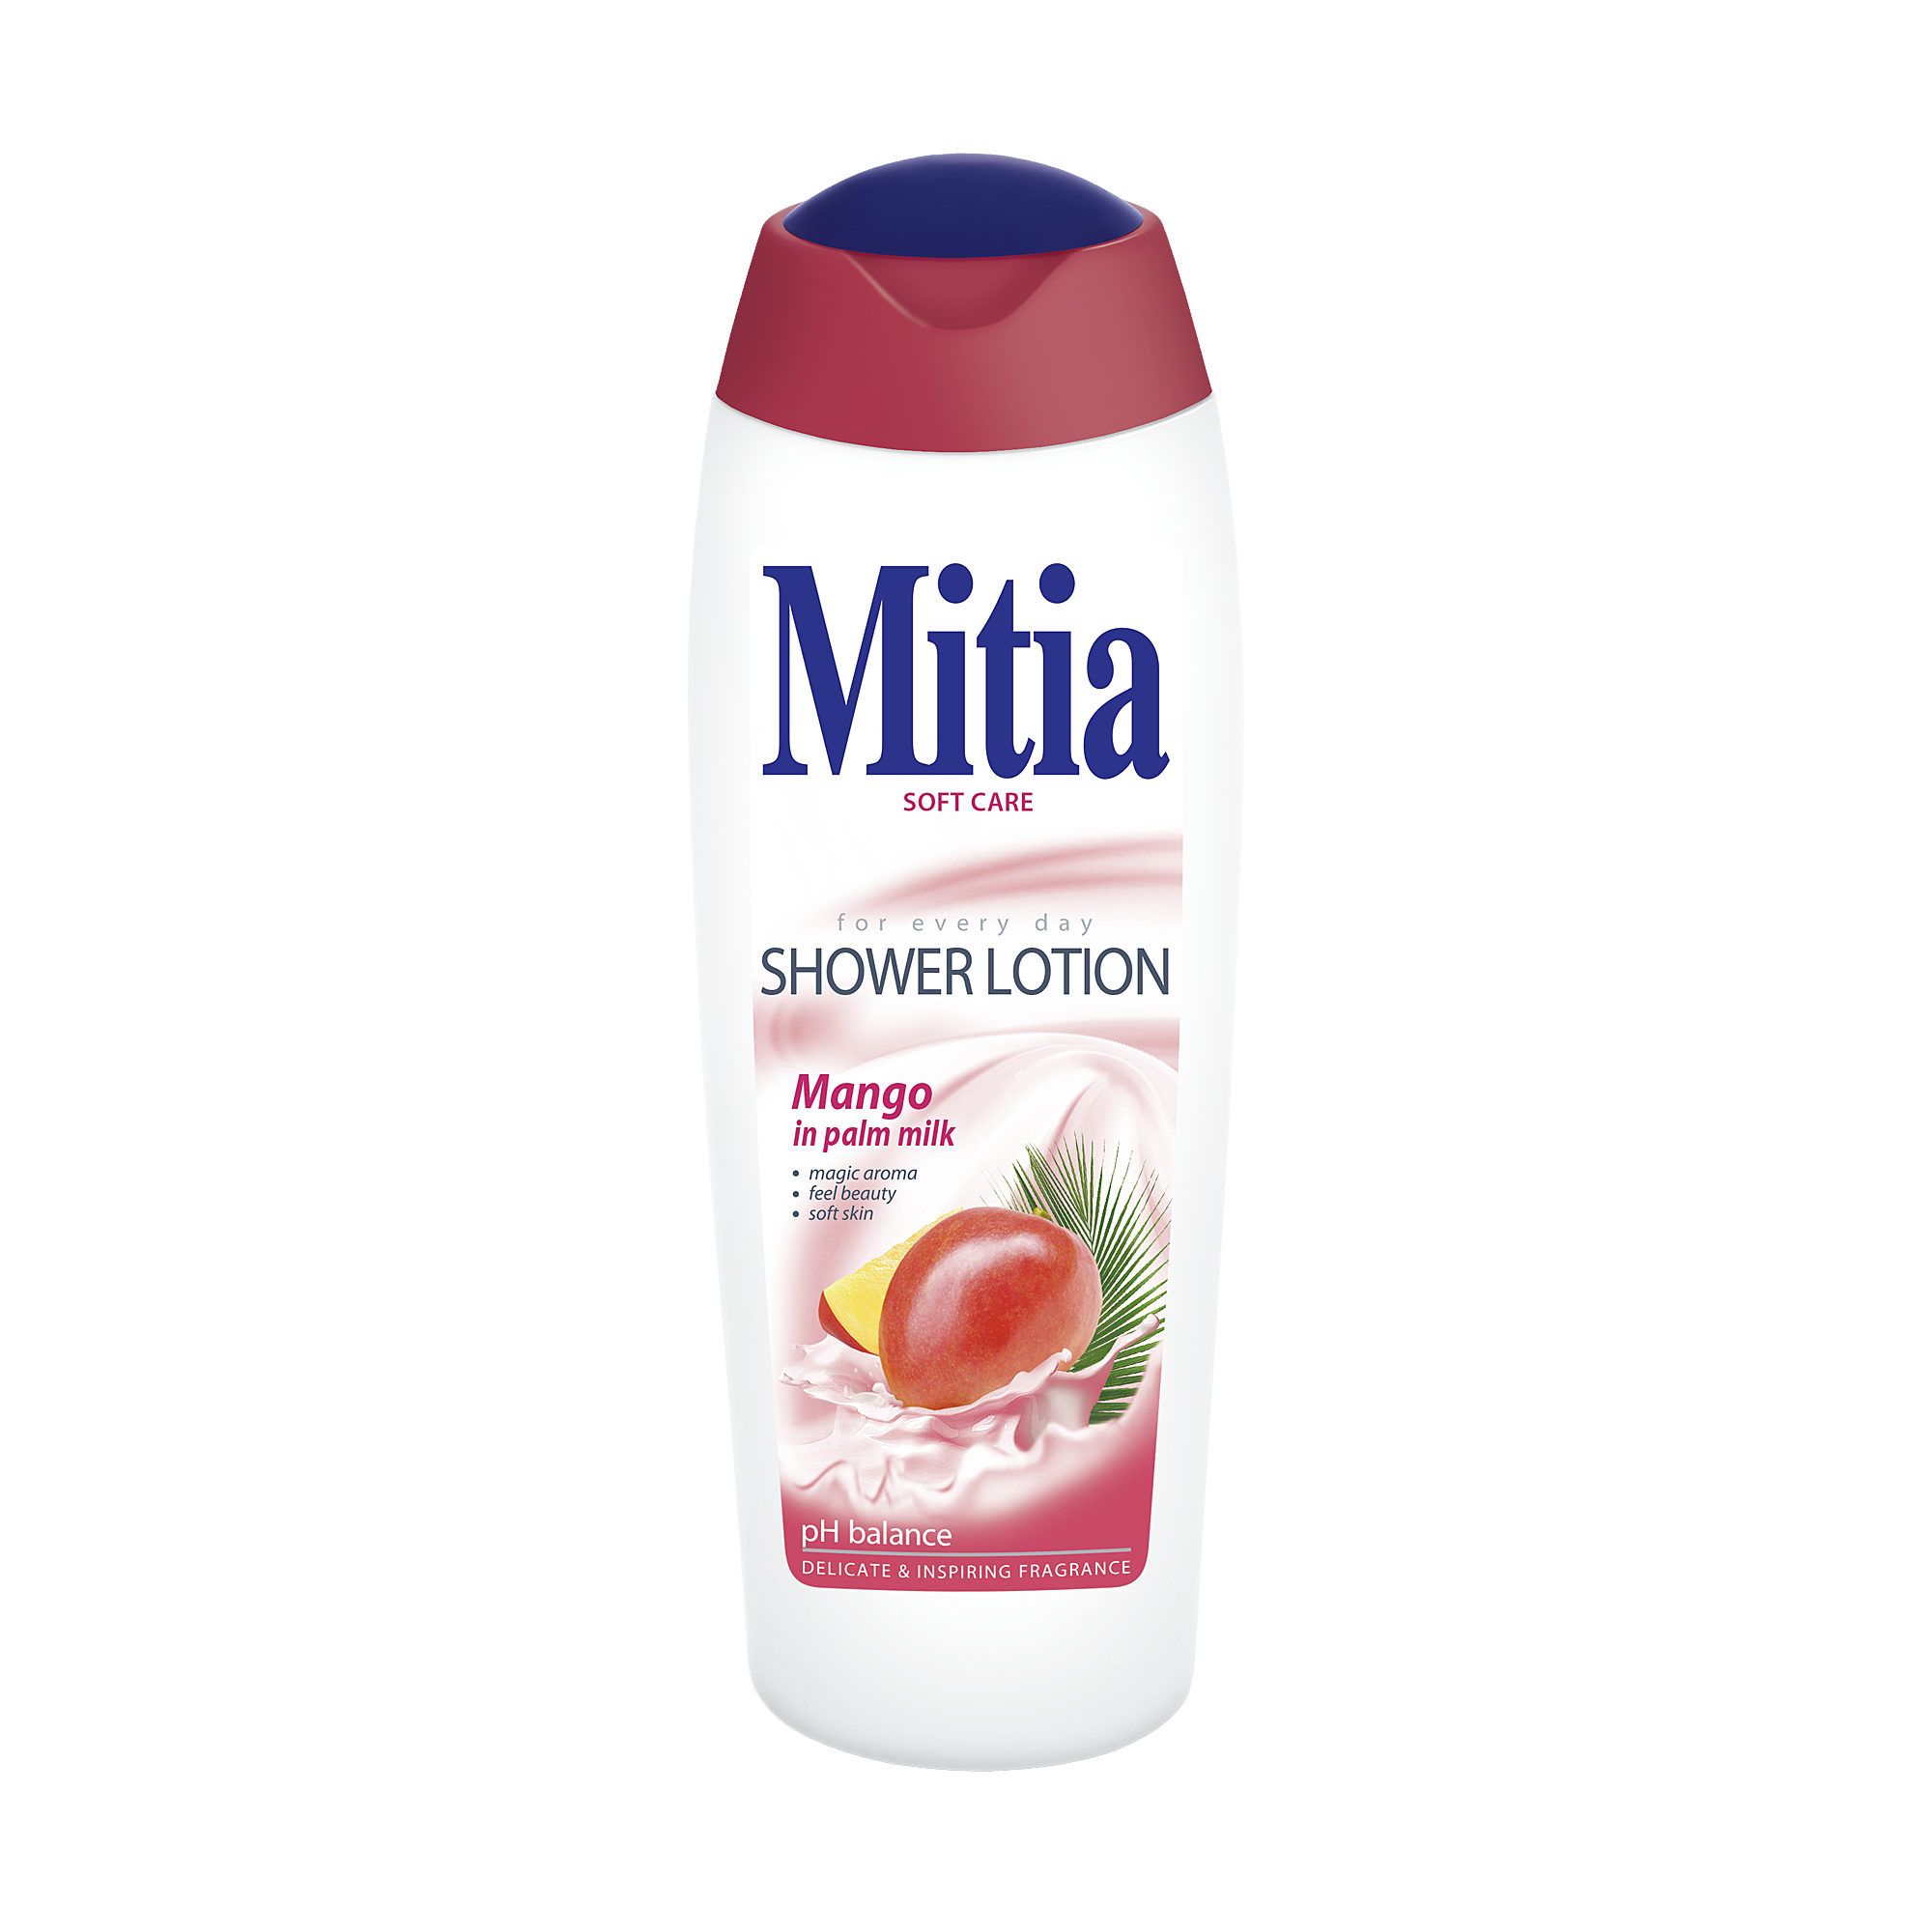 Mitia Mango in palm milk shower milk